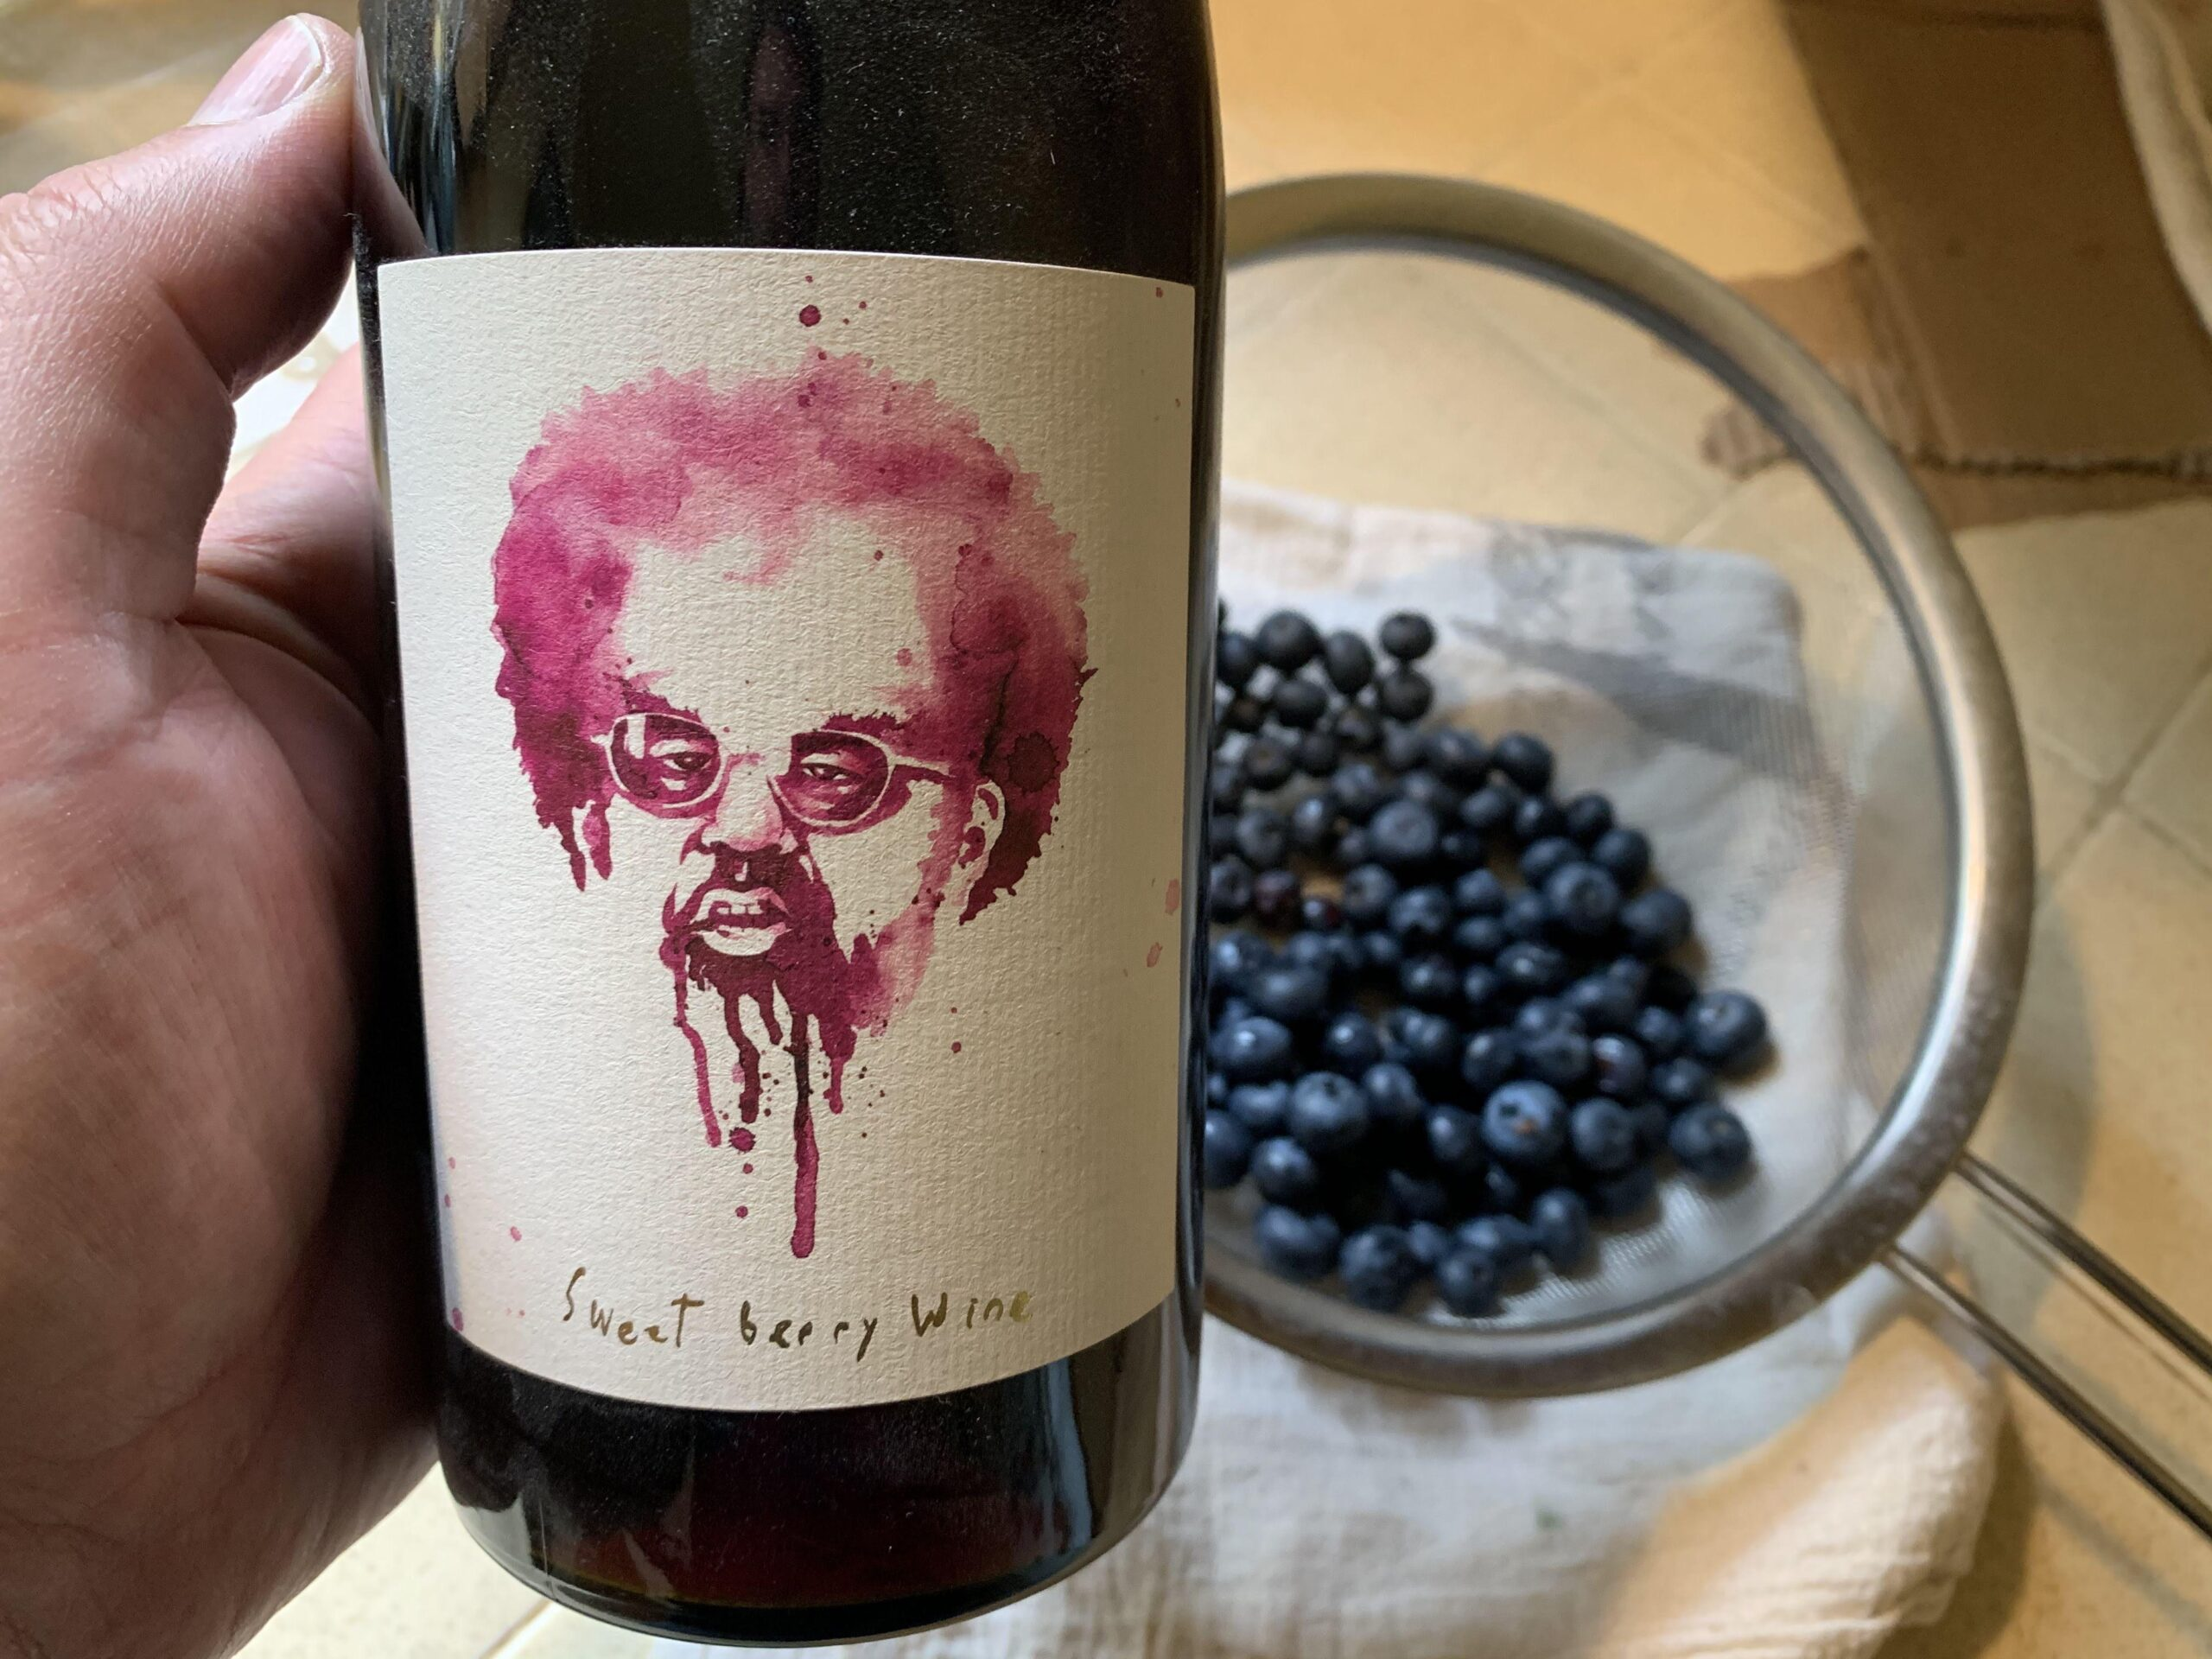 We cannot be more excited that sweet berry wine is now a real wine!